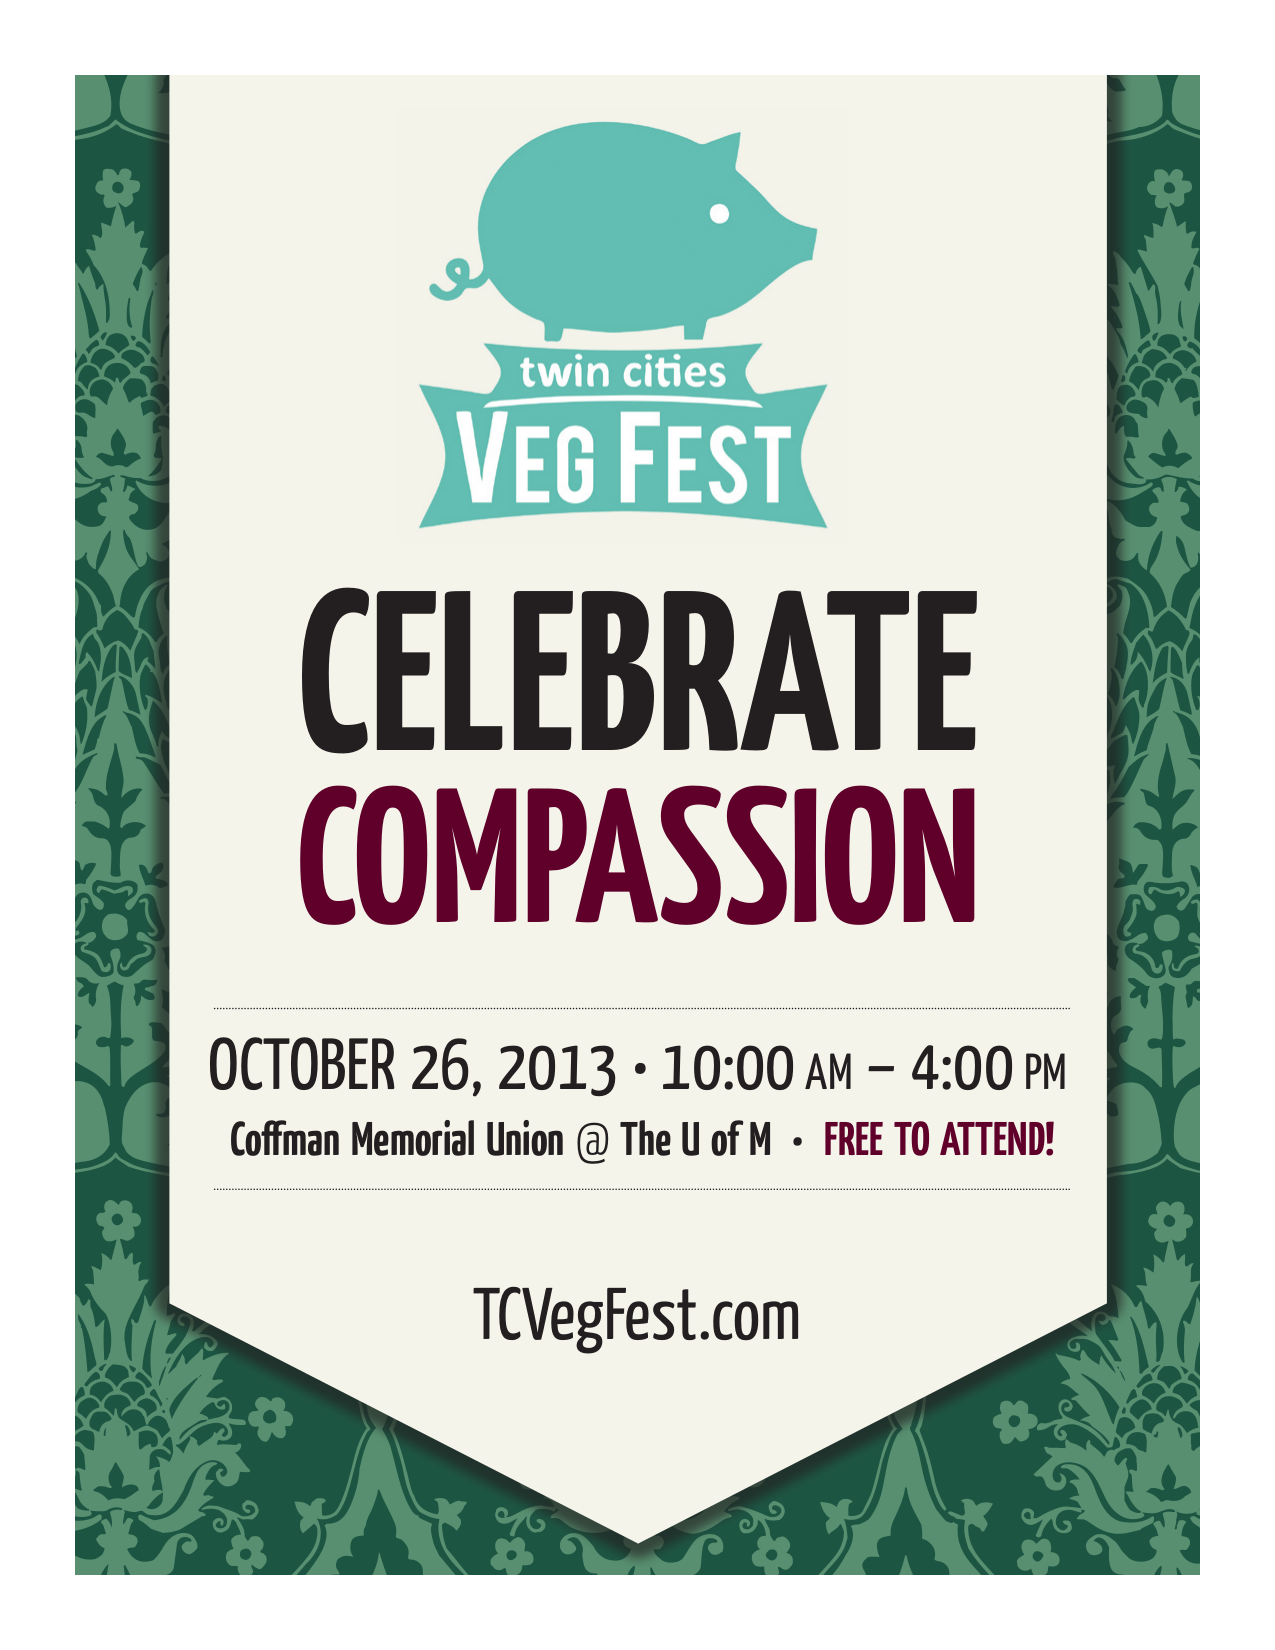 advertising veg fest from start to finish we distributed this small flyer at coffee shops and businesses